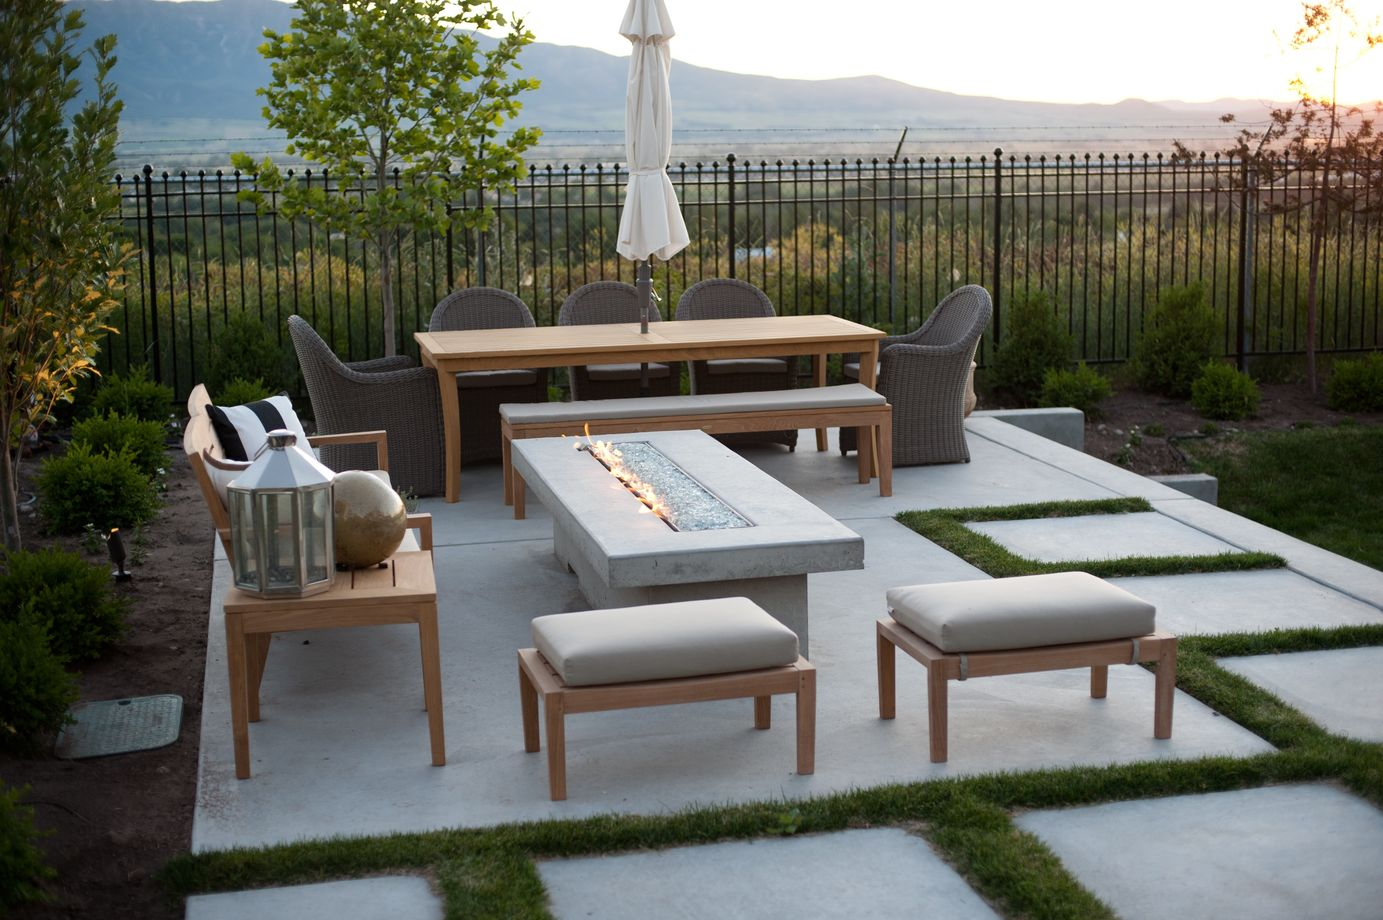 Modern Outdoor Chair Outdoor Living 8 Ideas To Get The Most Out Of Your Space